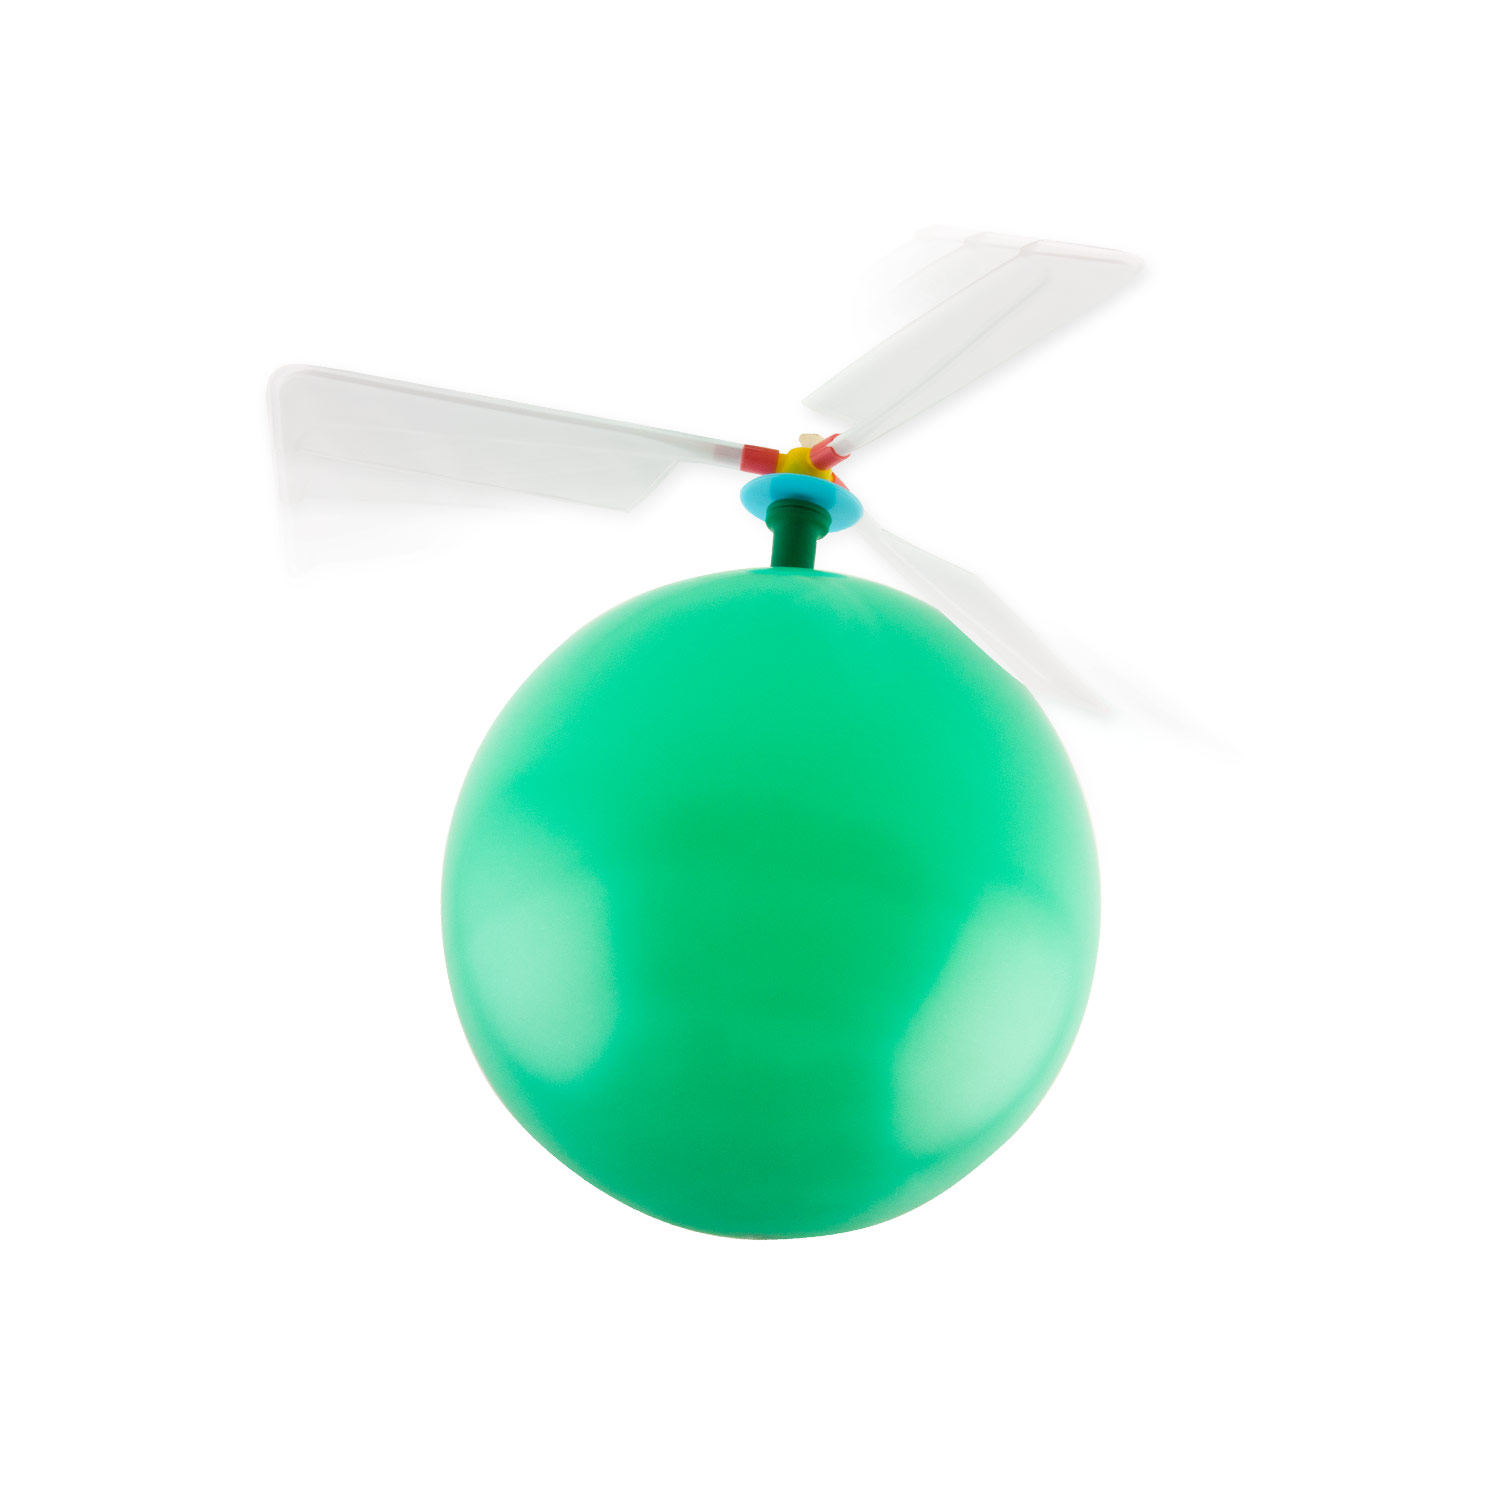 Balloon Powered Helicopter 4 Pack